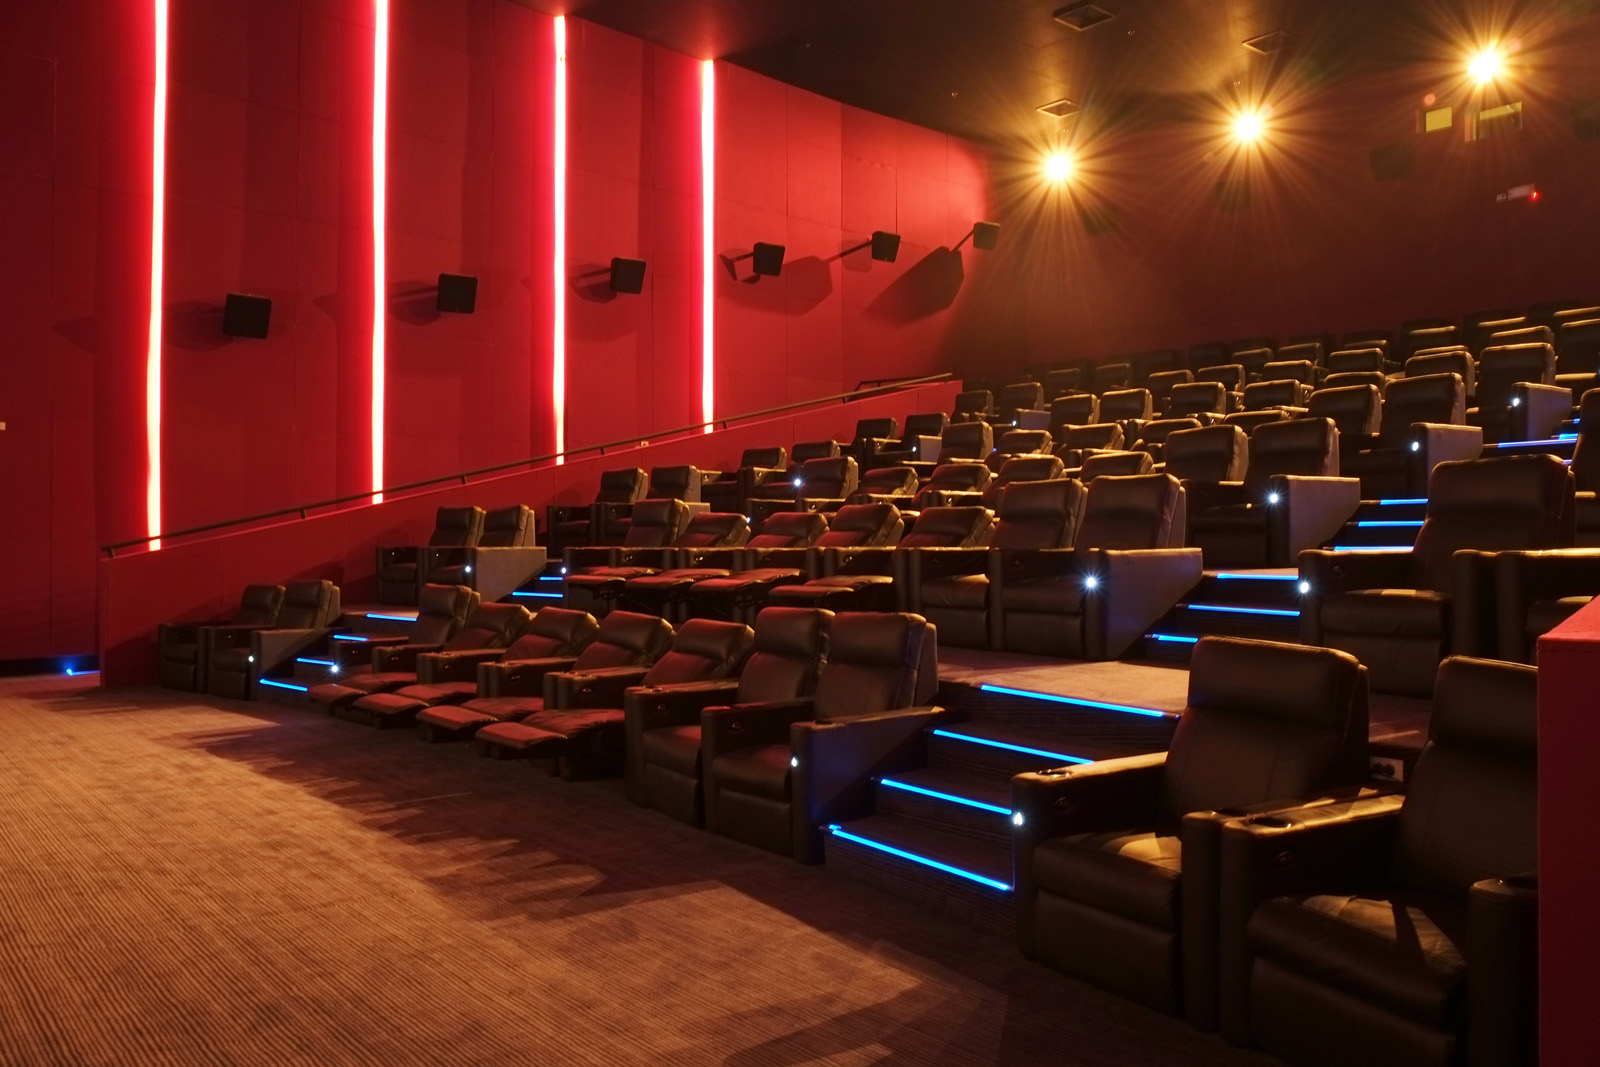 Phv movie theater